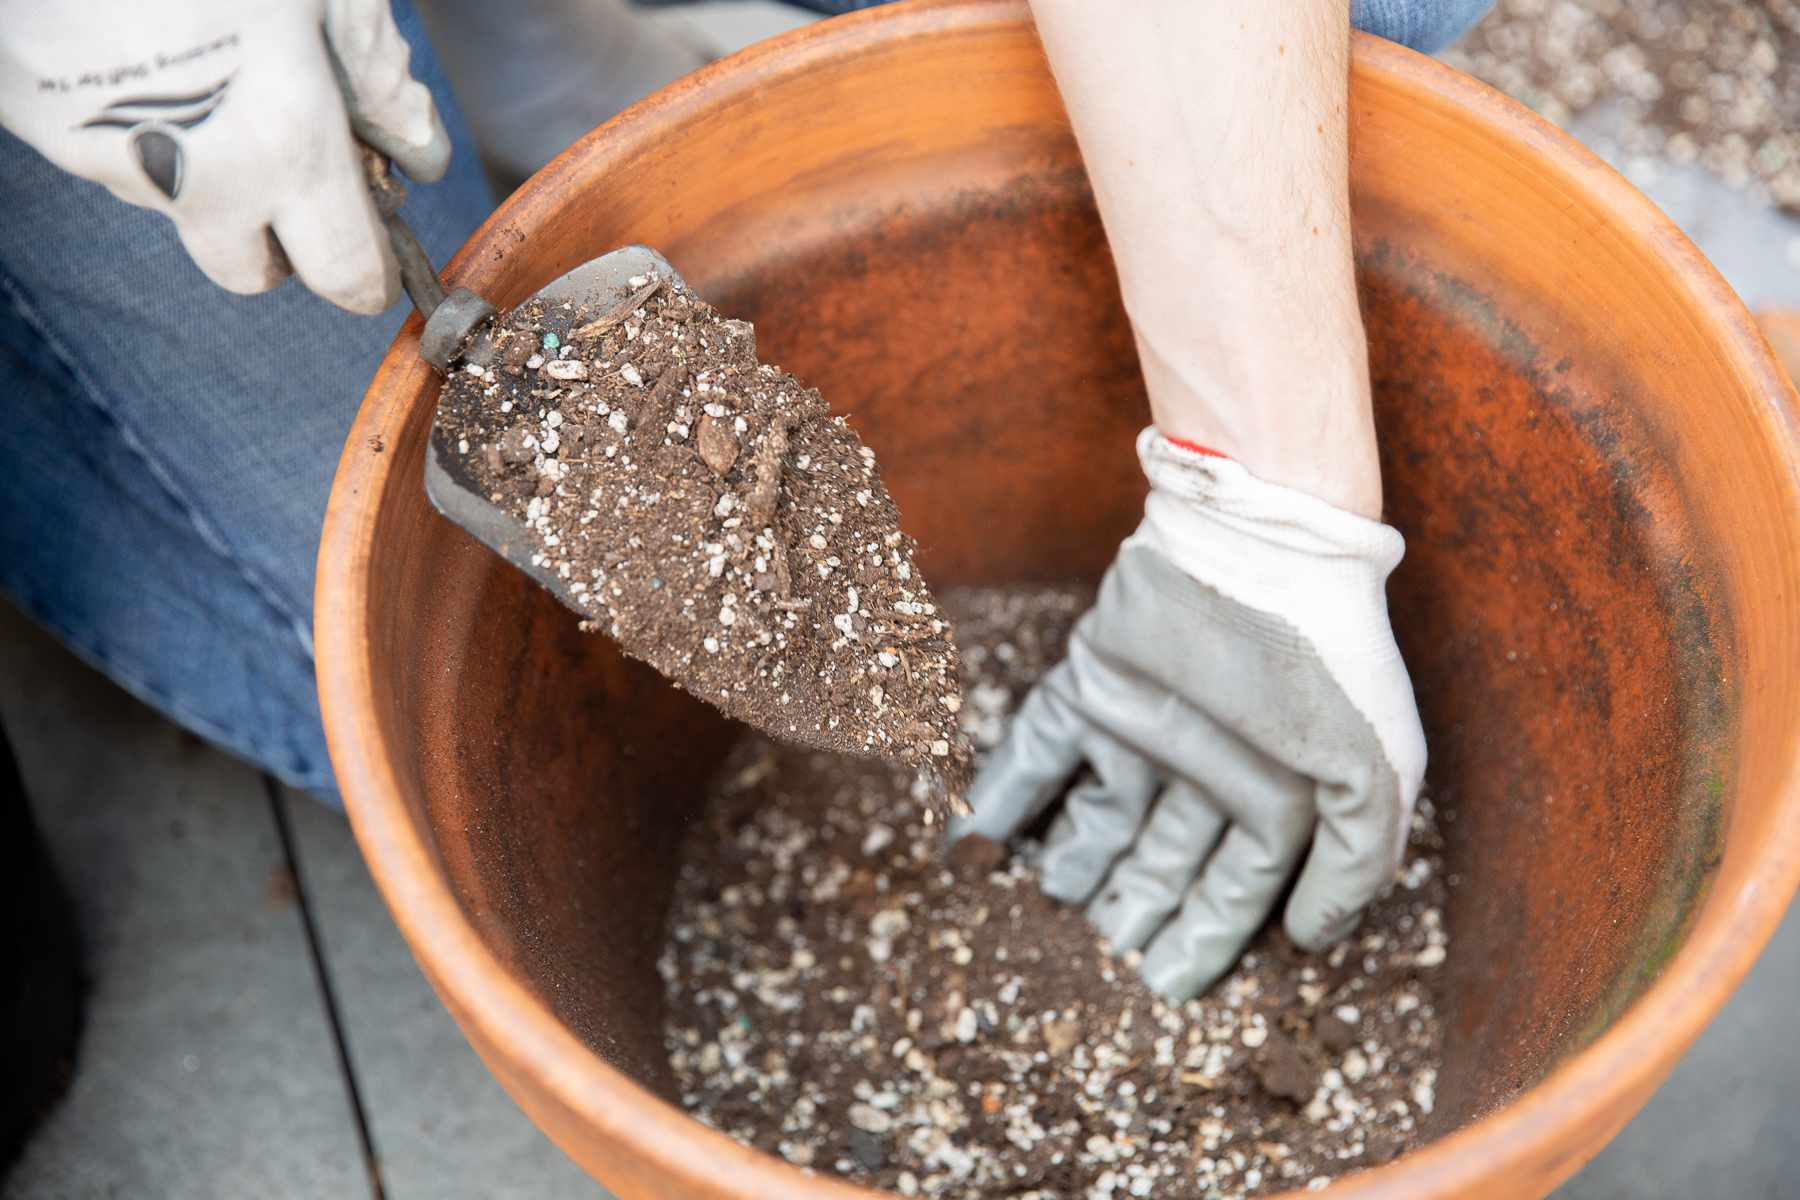 Potting soil mixture placed in large clay pot with small handheld shovel